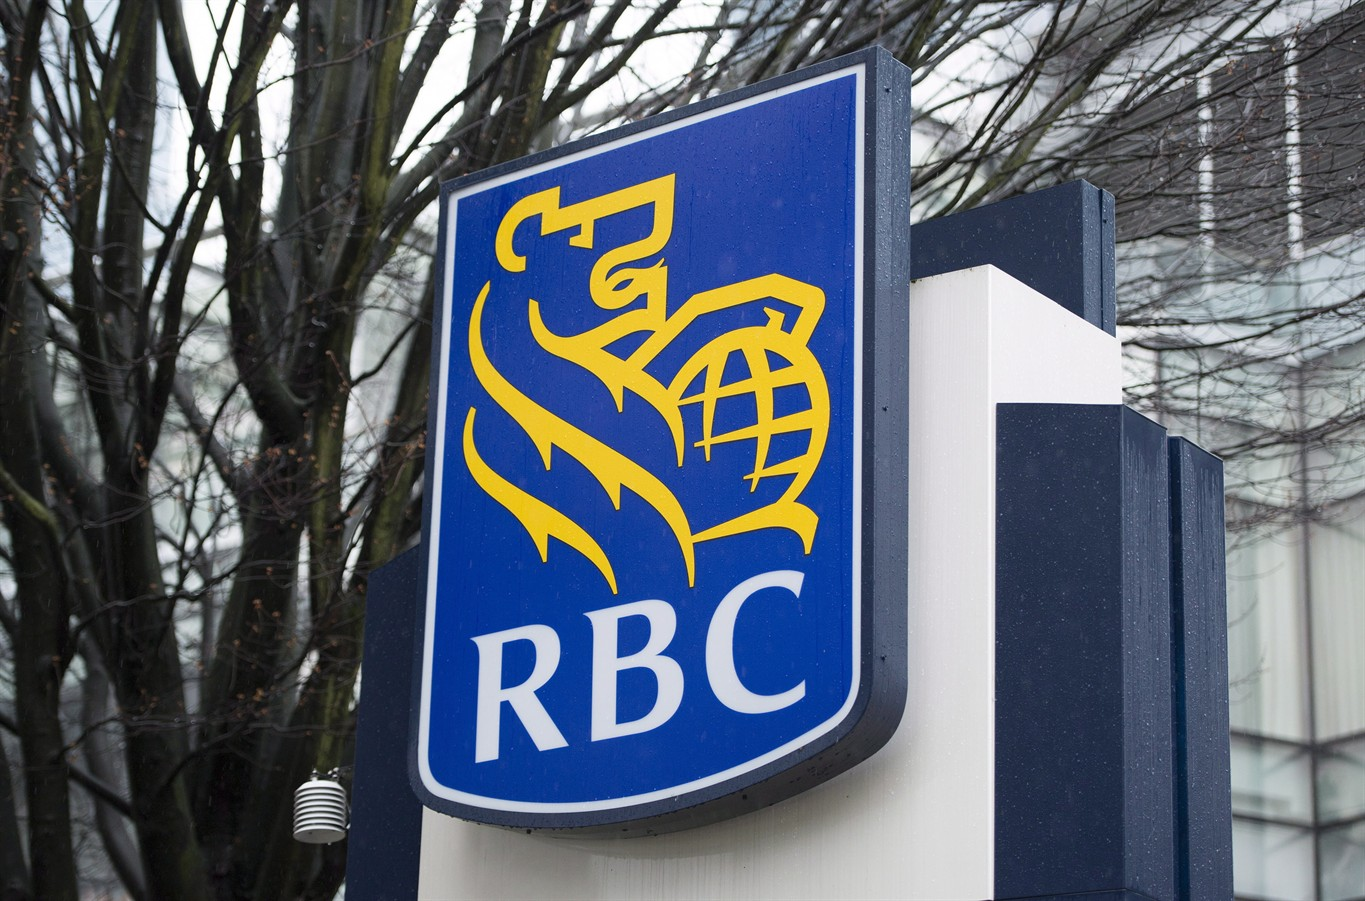 Royal Bank of Canada to increase fixed mortgage rates as of Thursday